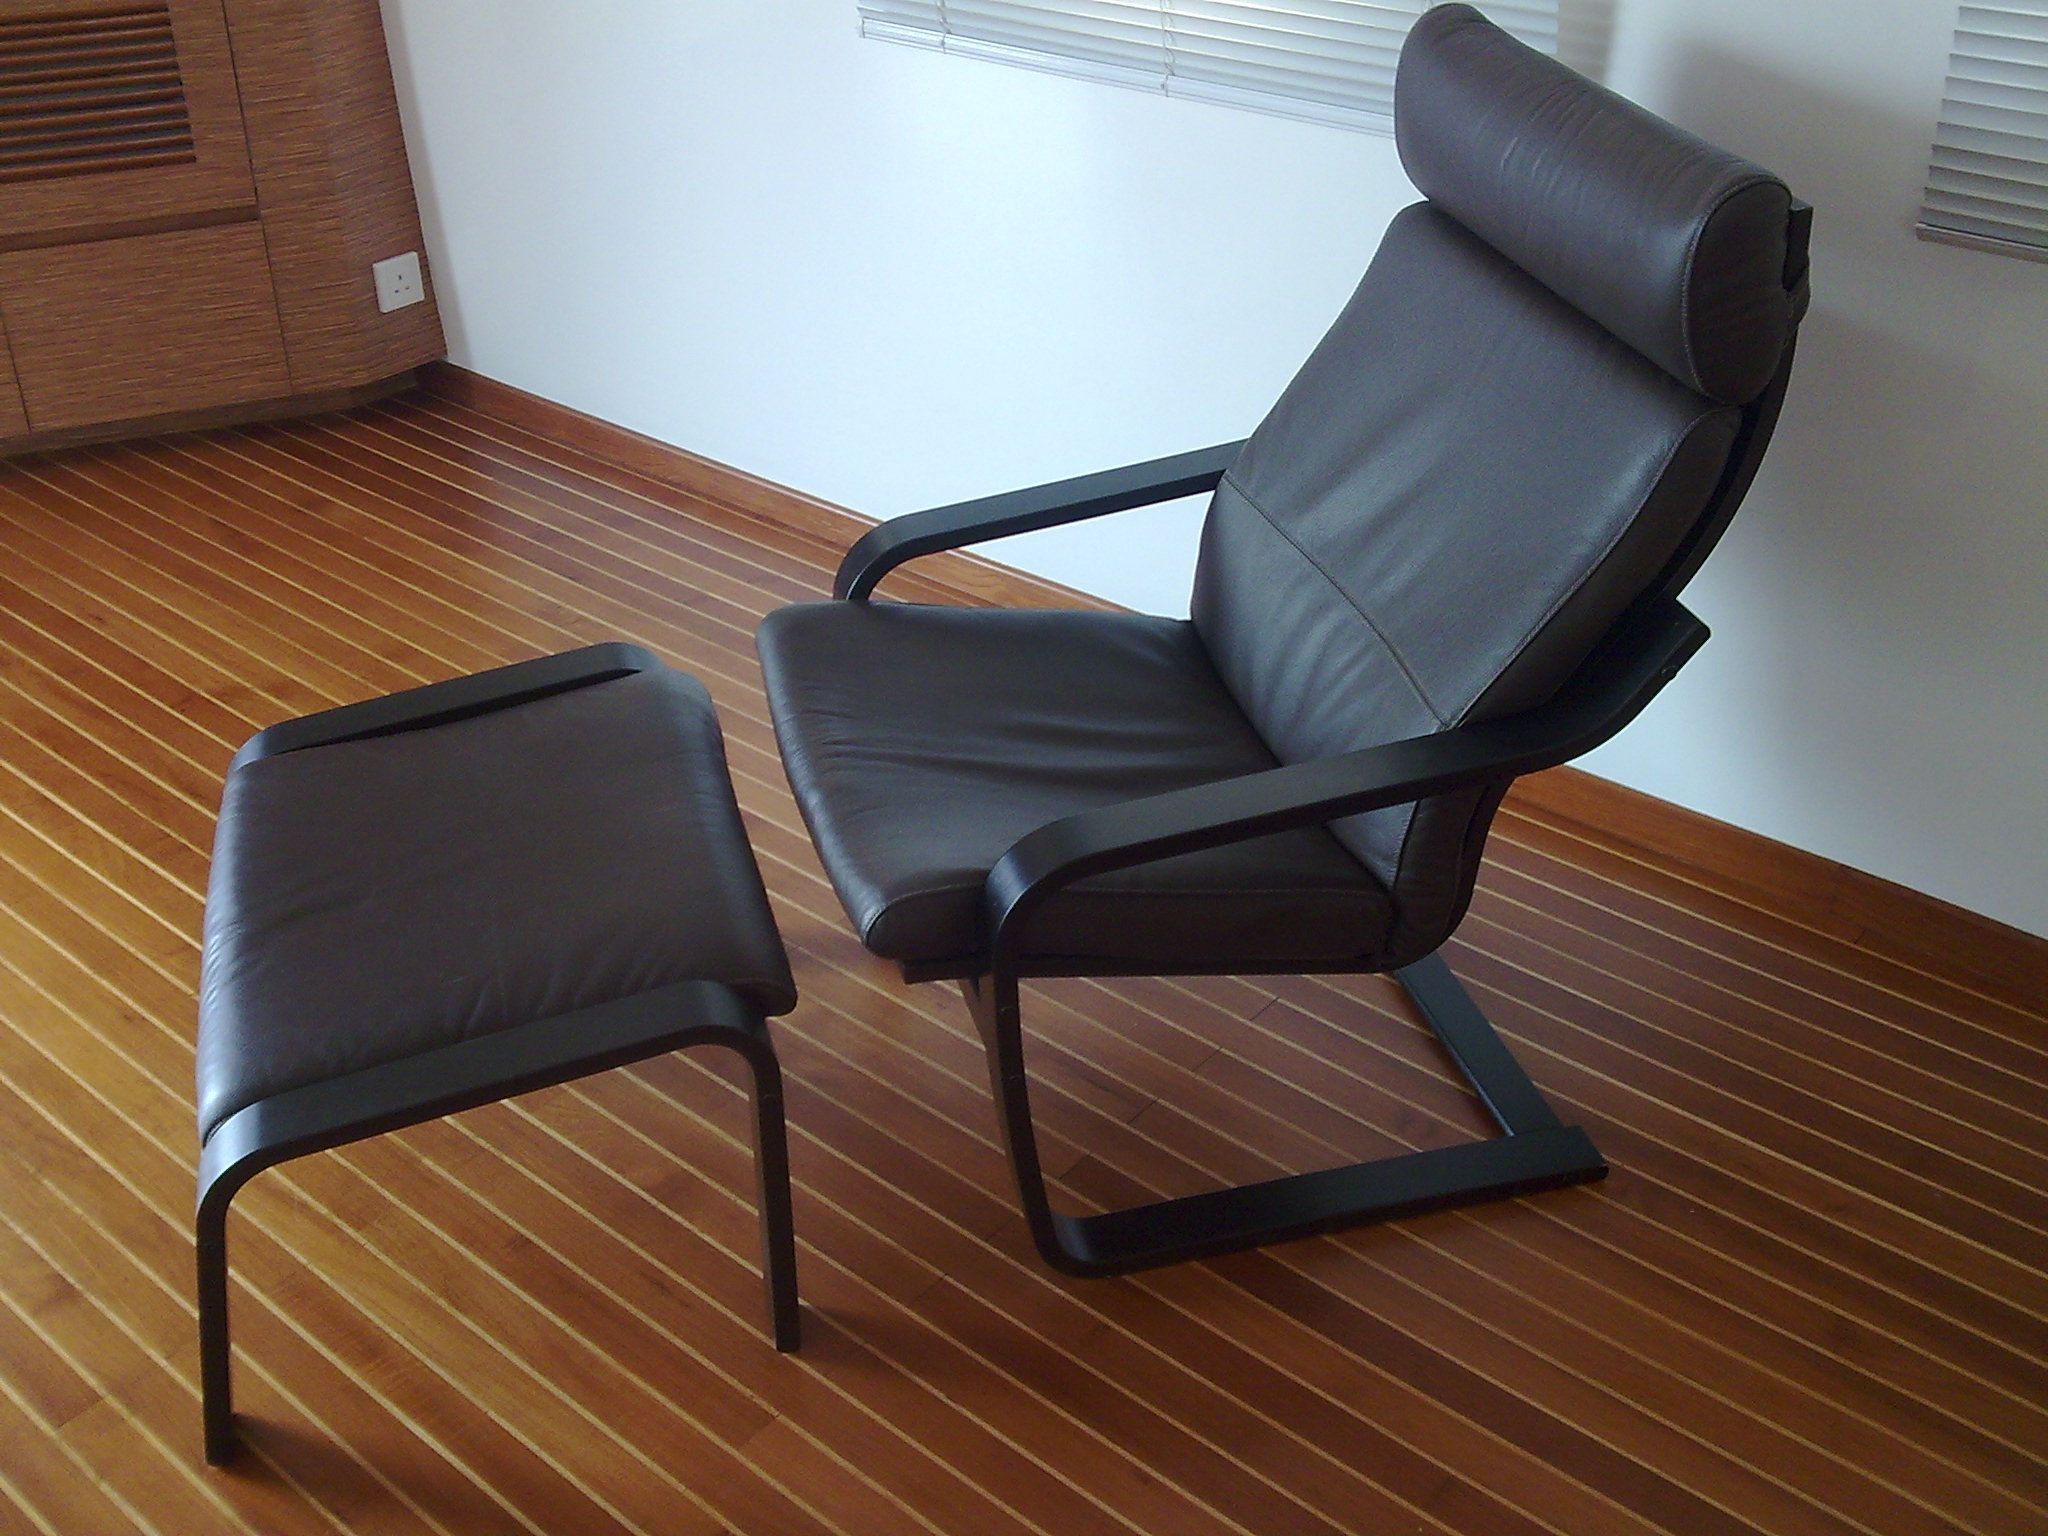 Ikea Poang with Ottoman black leather | Chairs | Pinterest ...